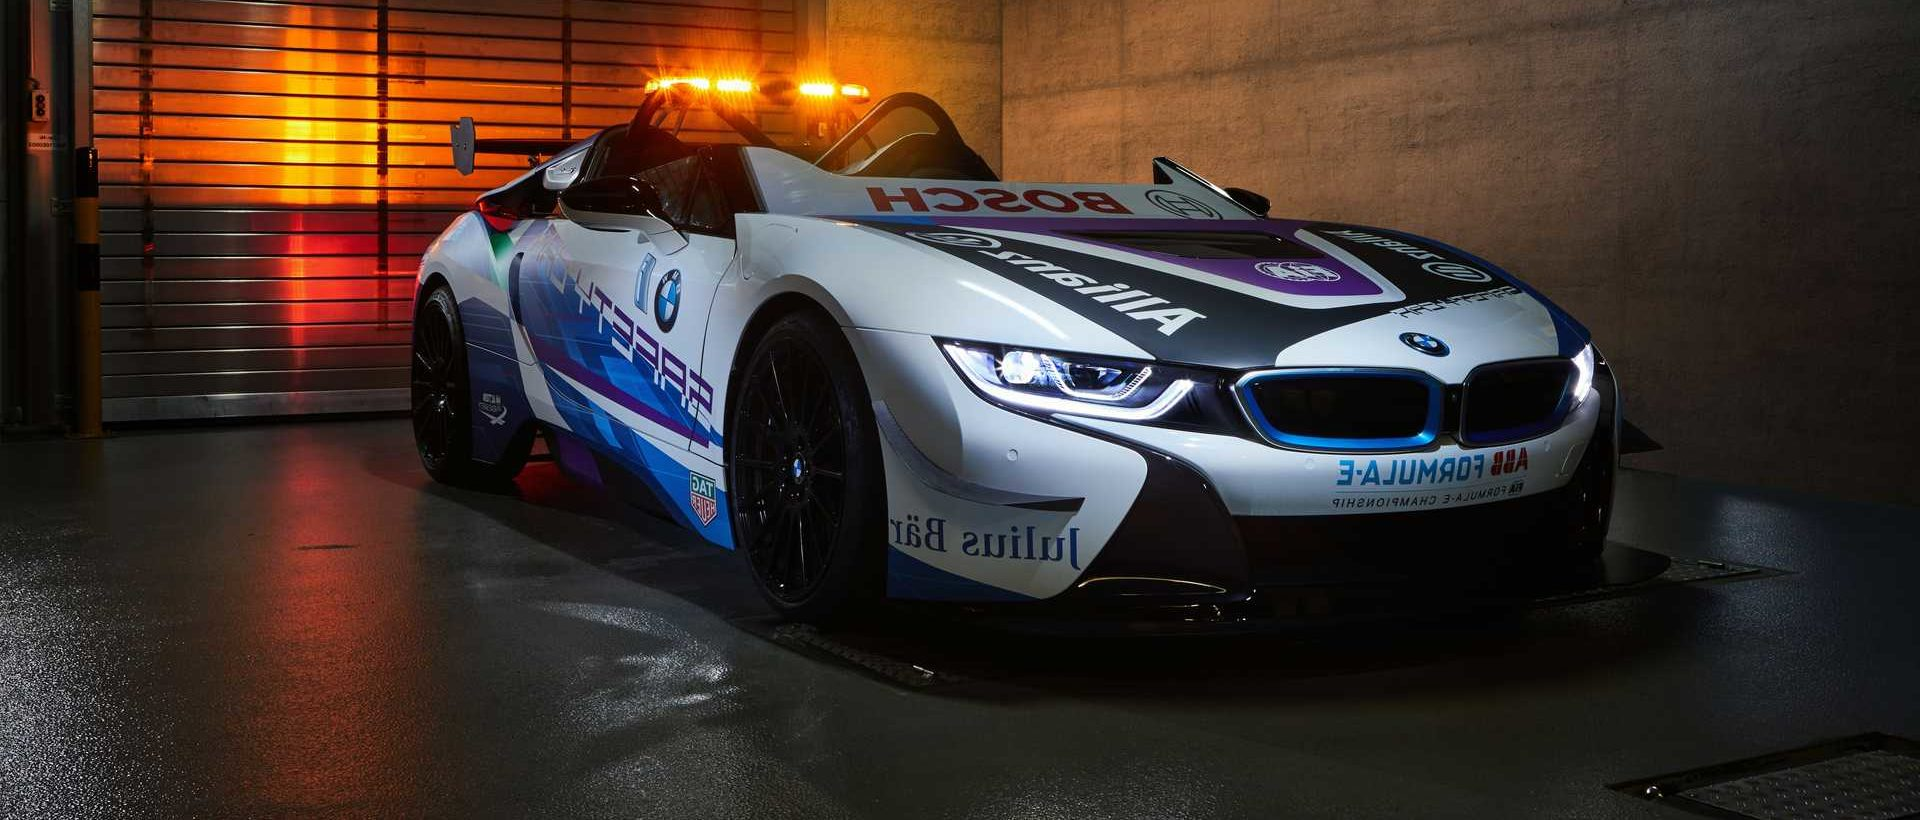 BMW Introduces New i8 Safety Tools to Be Used in Formula E - Somag News